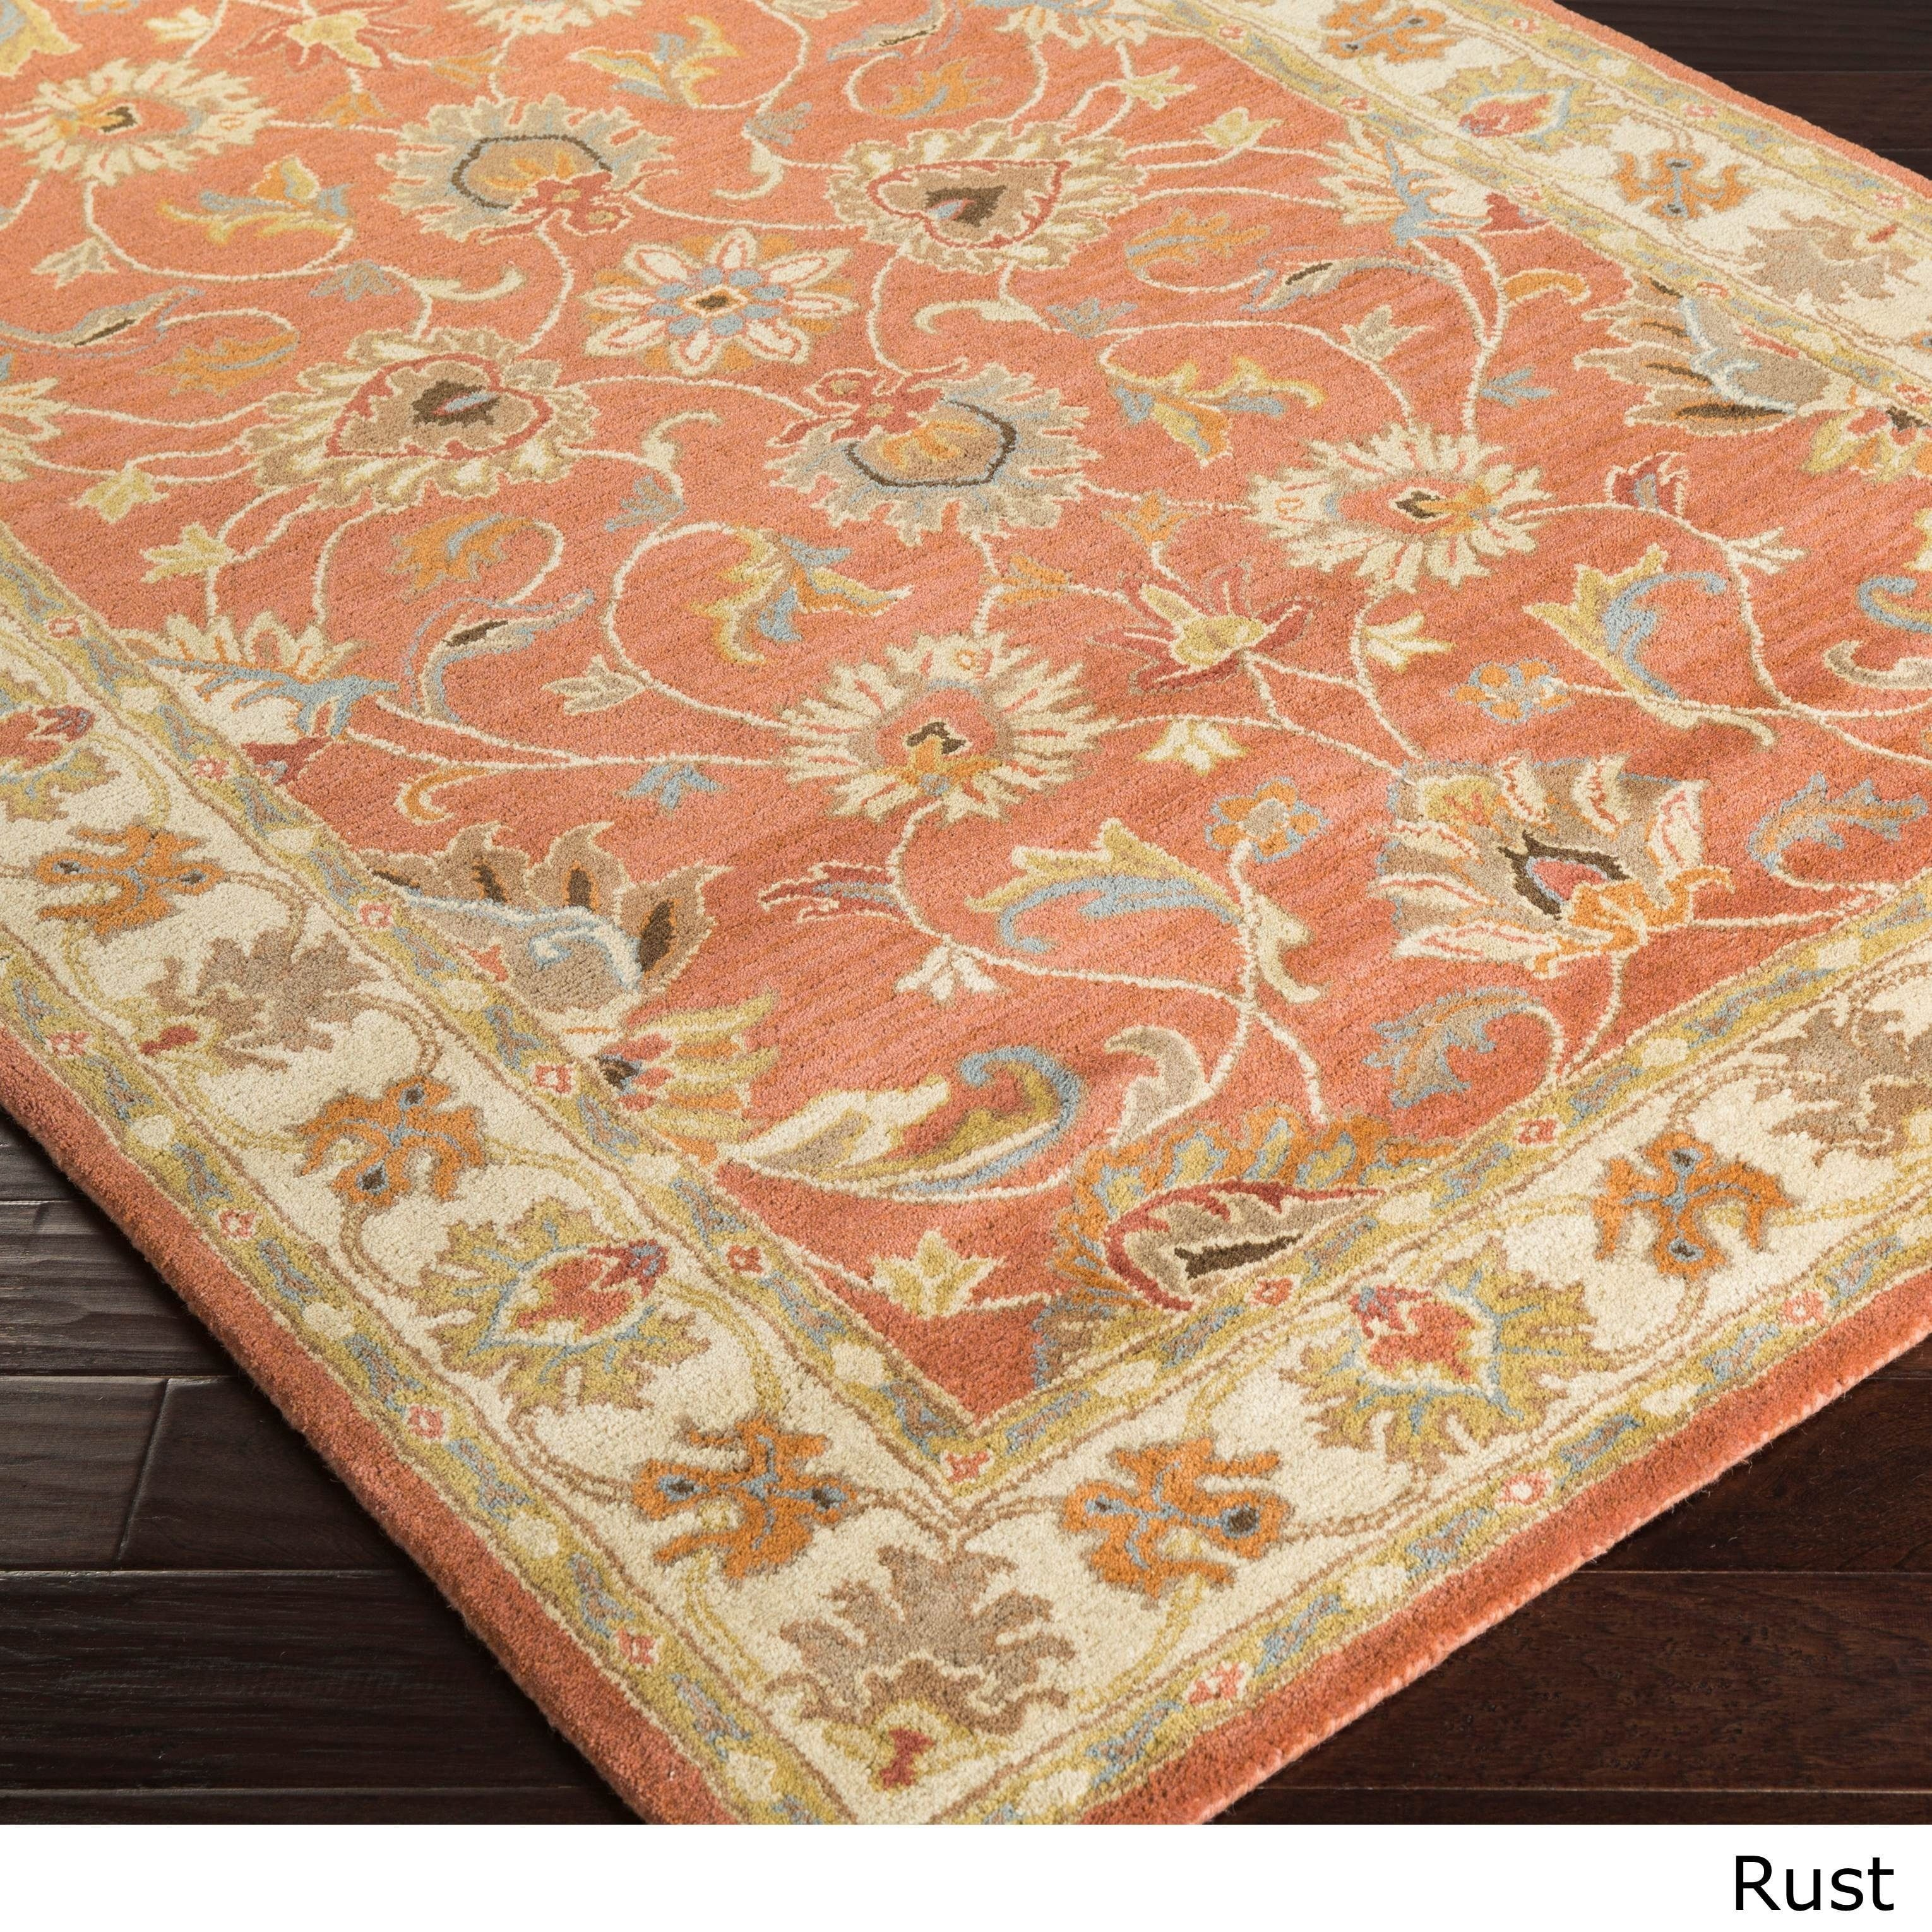 Hand Tufted Traditional Wool Rug 9 X 12 Rust 9 X 12 Red